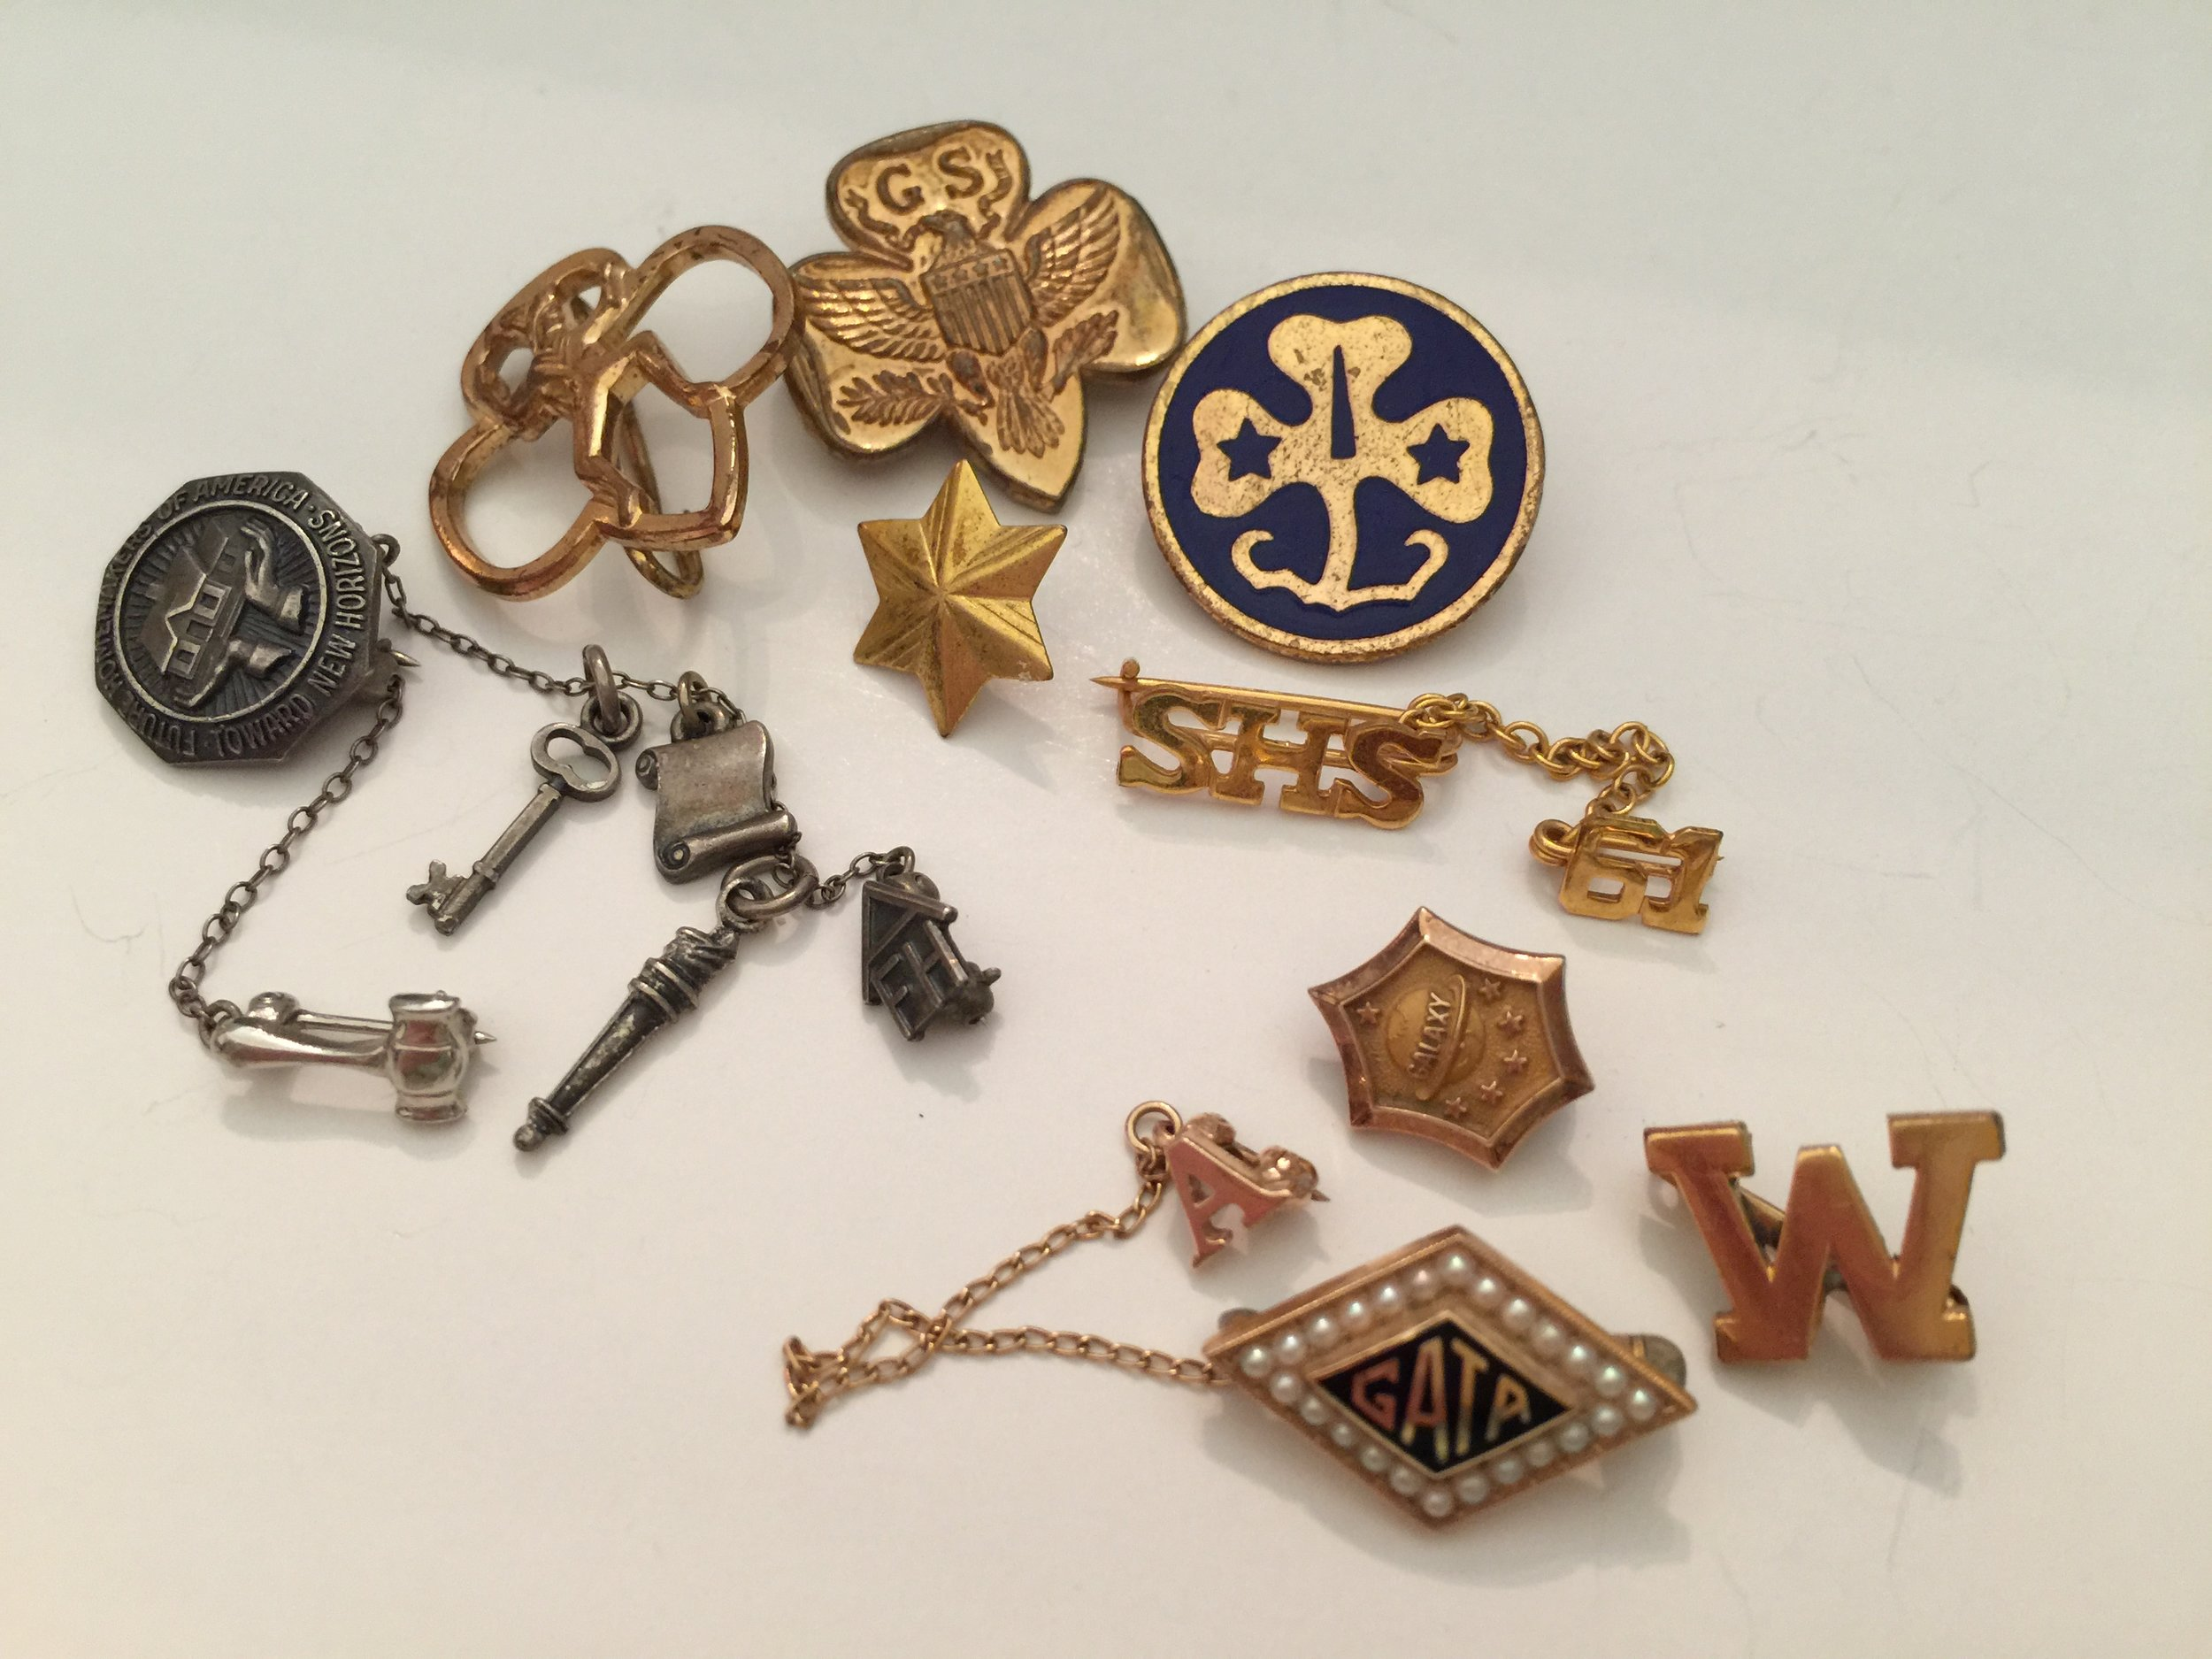 Club pins that span elementary school, high school and college ... all bring pleasant memories.